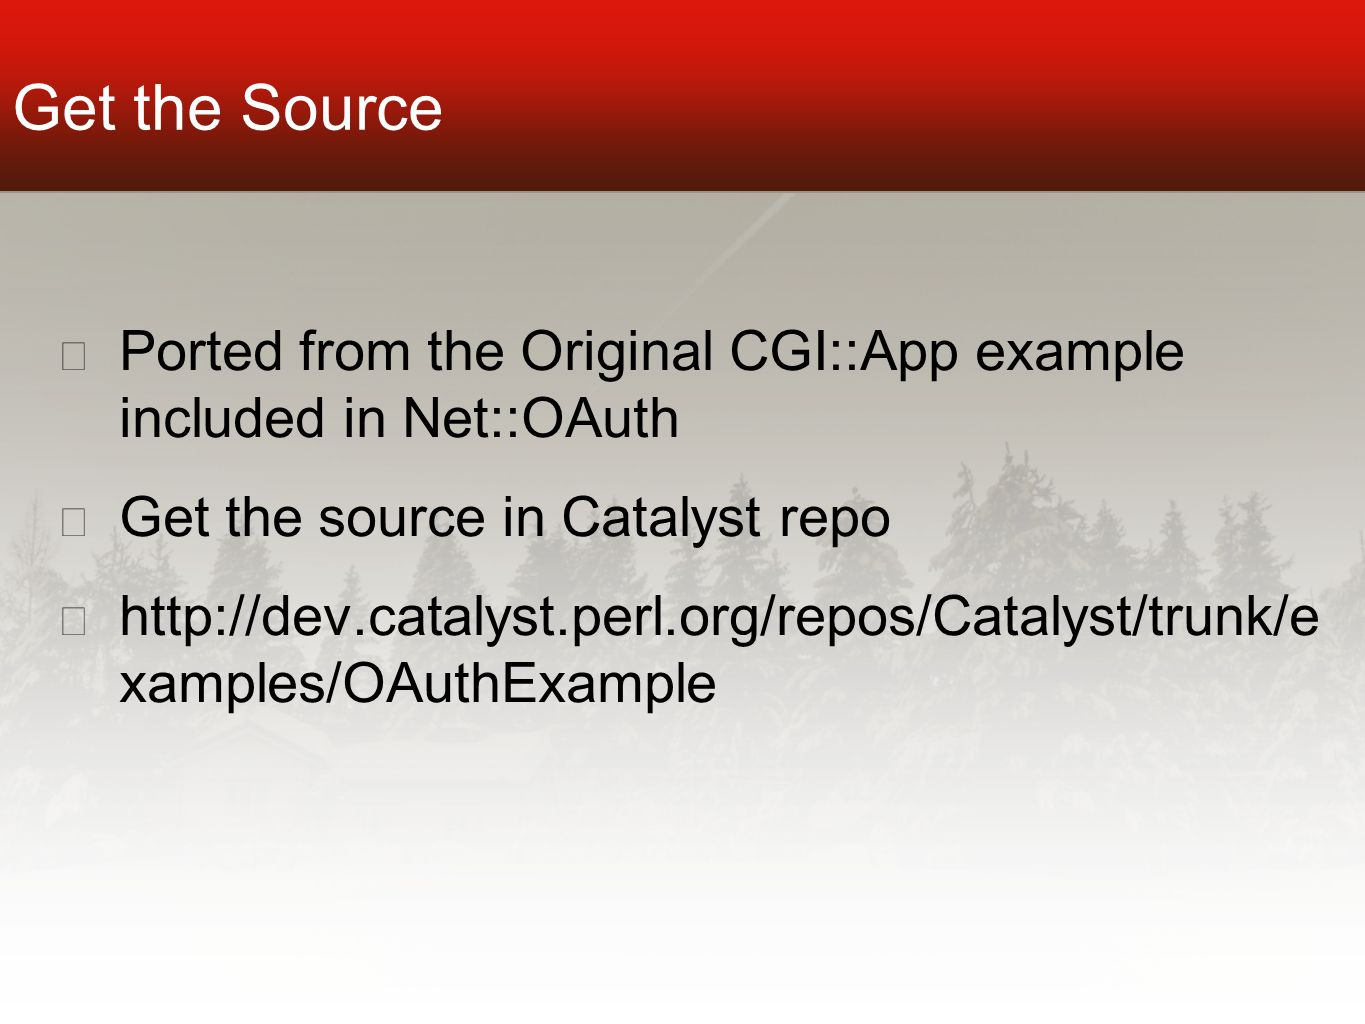 Get the Source ★ Ported from the Original CGI::App example included in Net::OAuth ★ Get the source in Catalyst repo ★ http://dev.catalyst.perl.org/repos/Catalyst/trunk/e xamples/OAuthExample